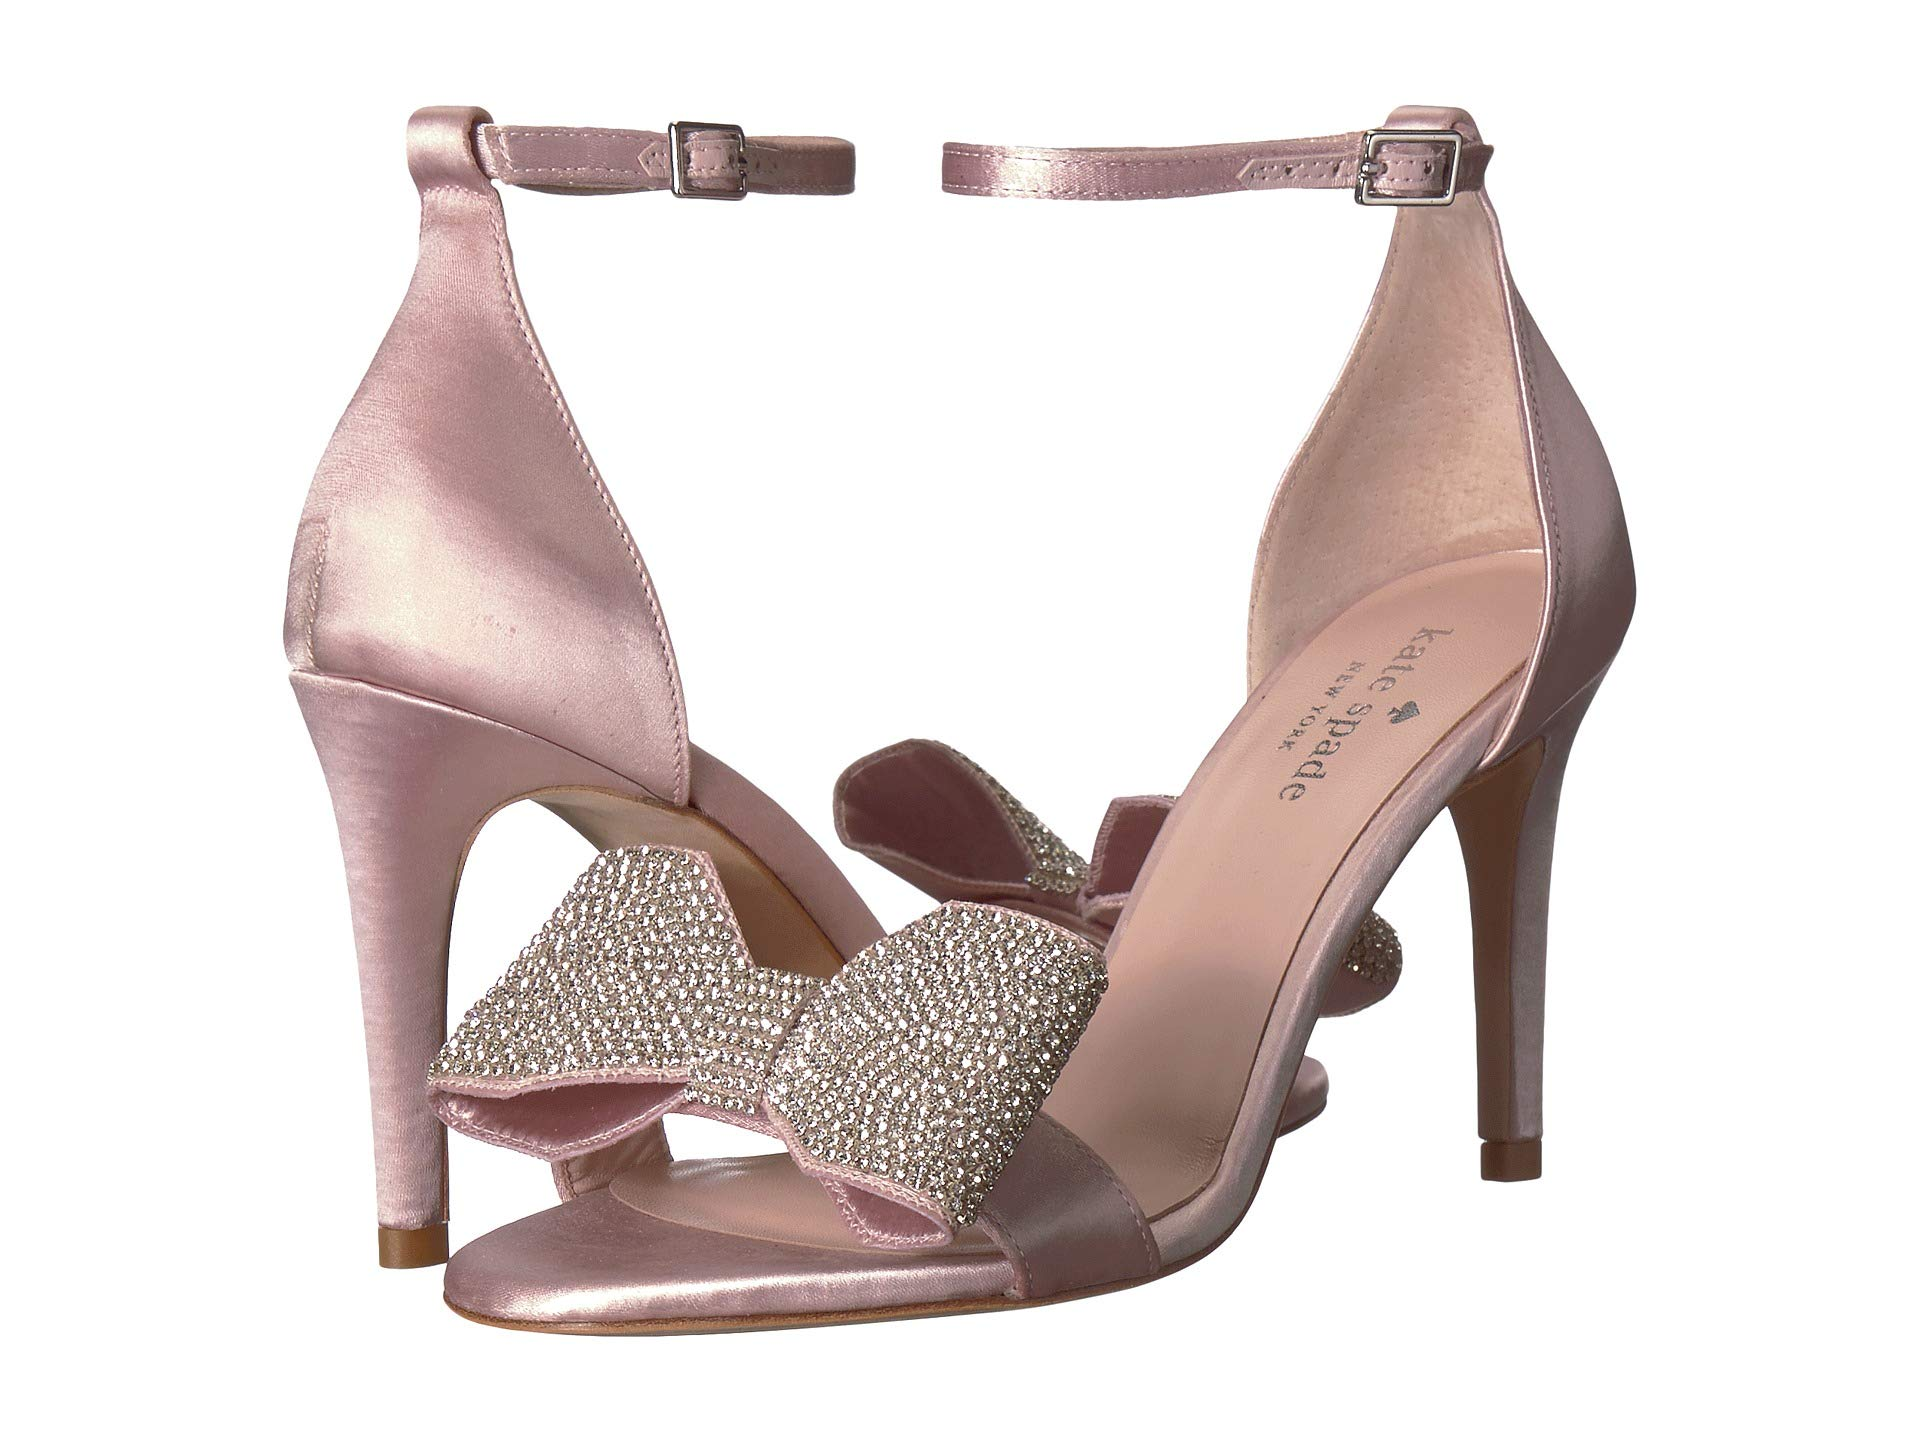 8e76e1f49f85 Kate Spade New York Gweneth Heeled Sandal at Luxury.Zappos.com